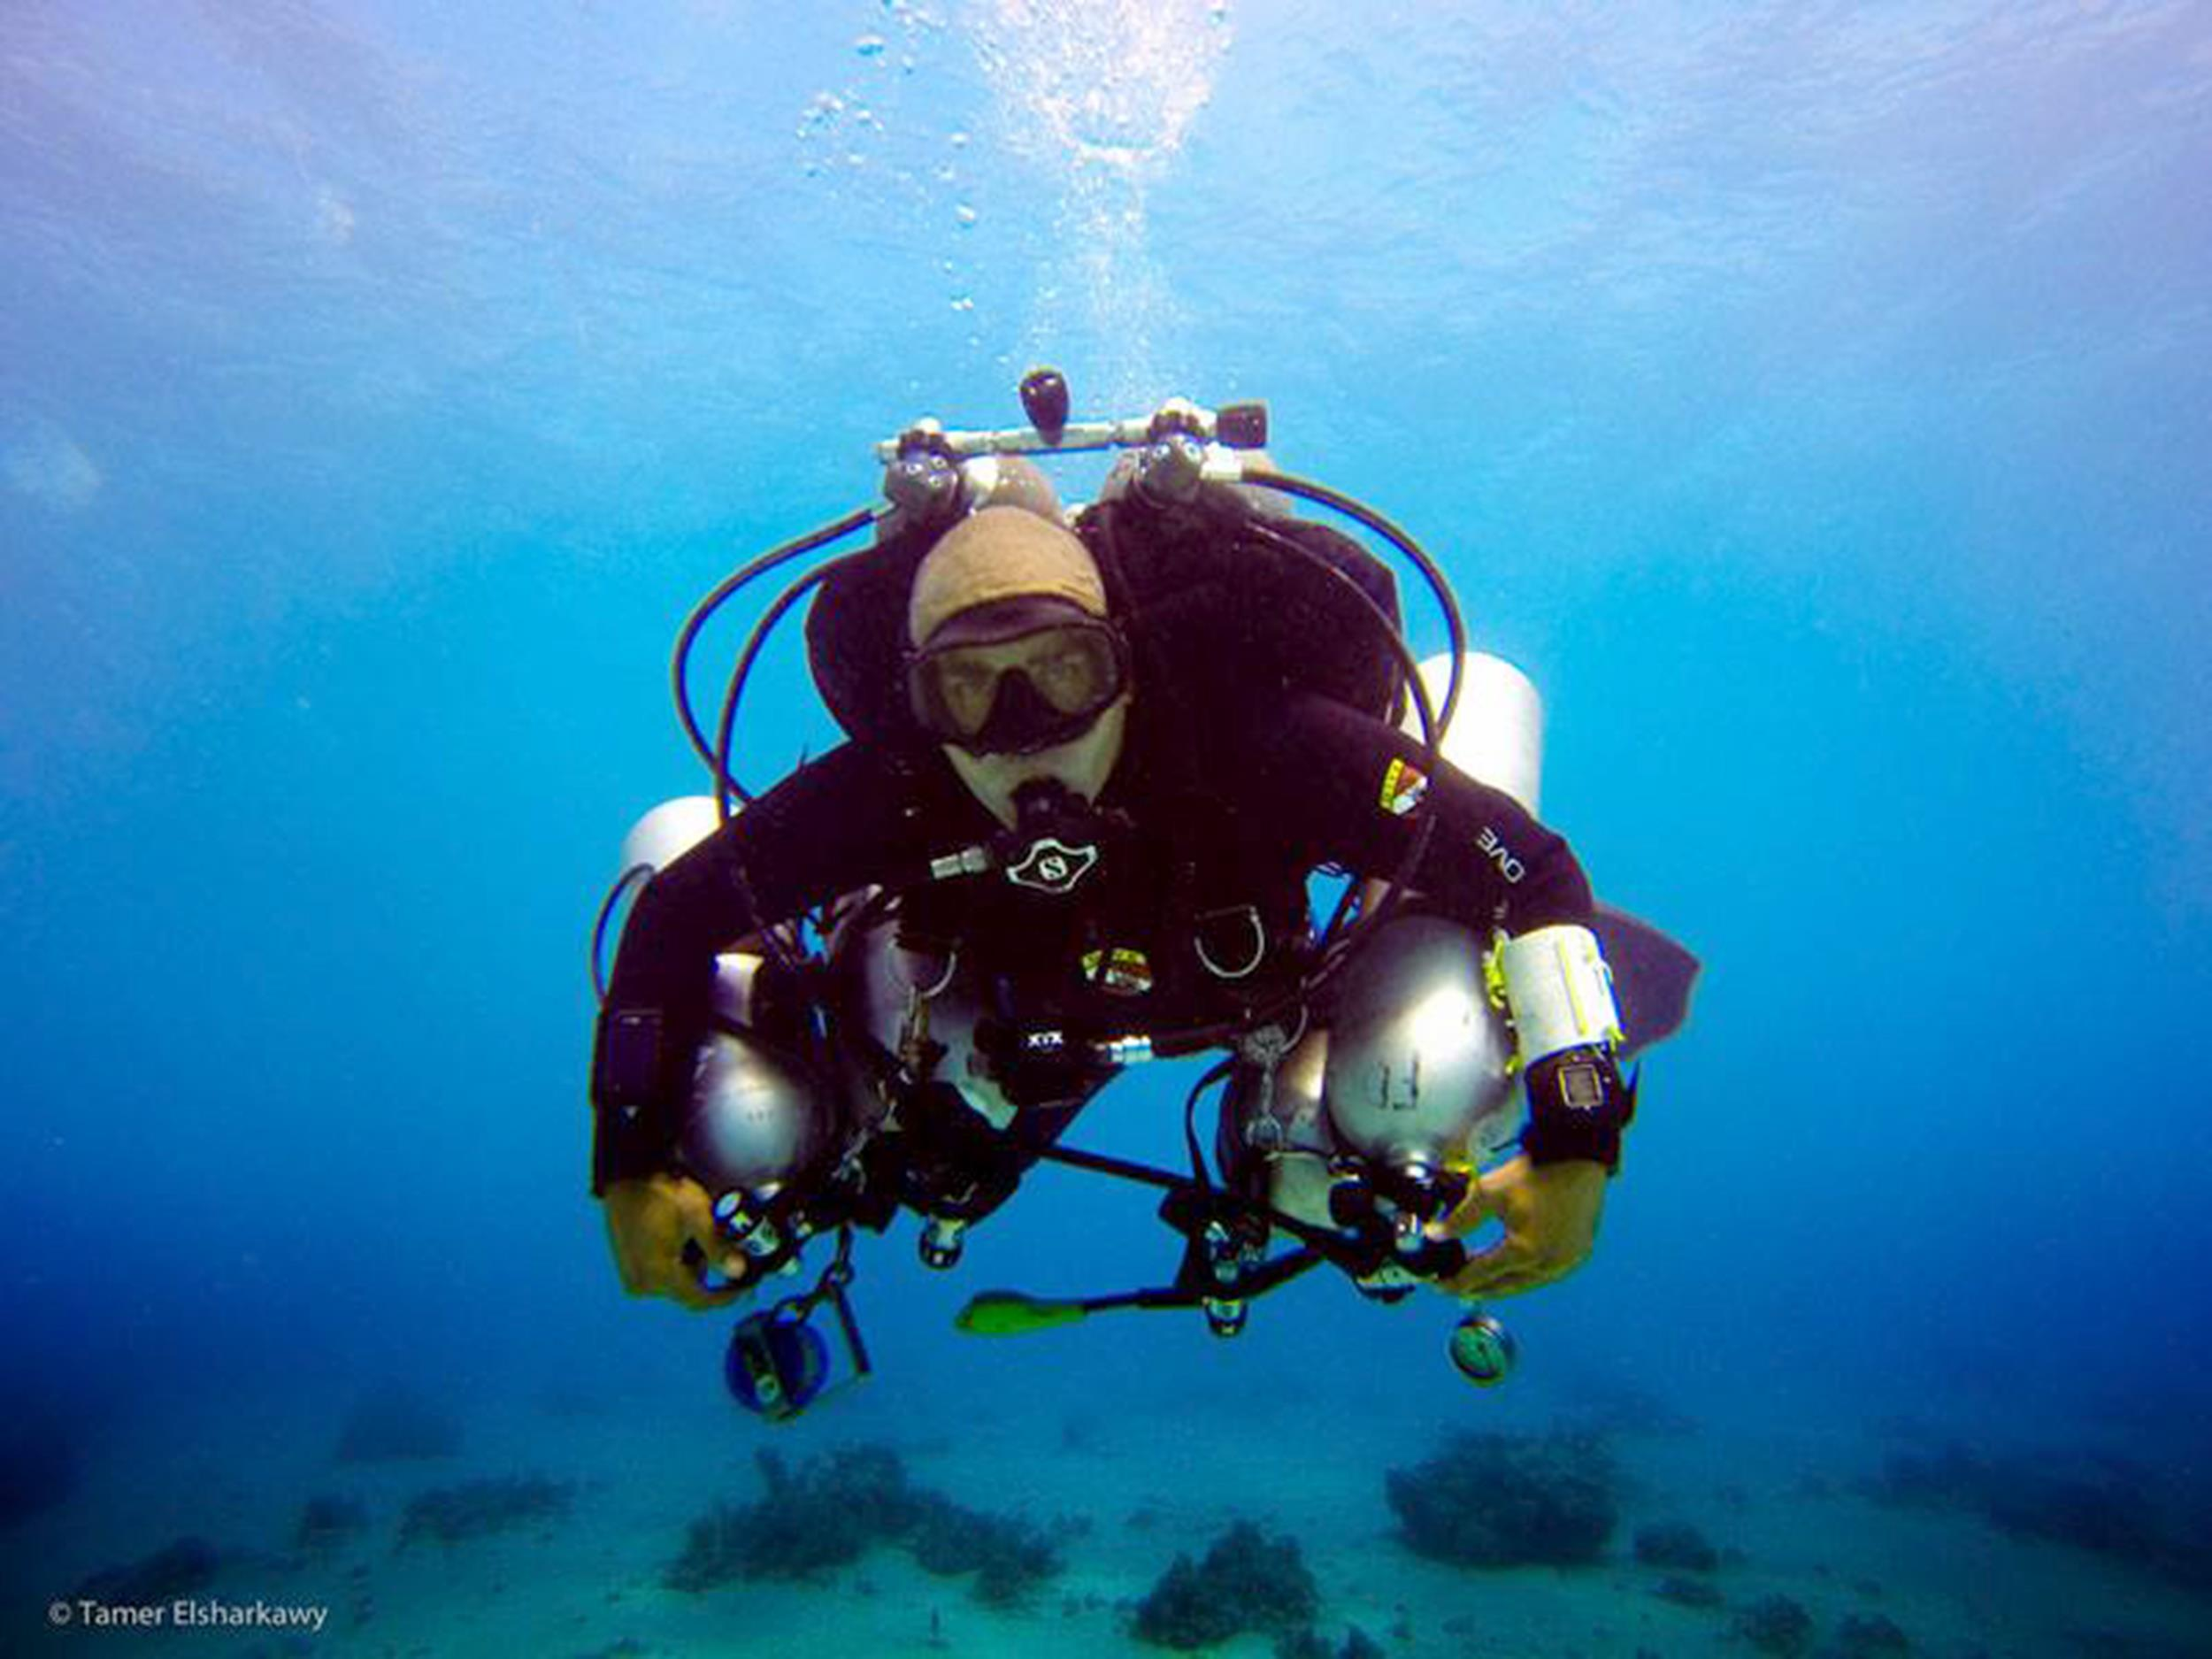 Egyptian Scuba Diver Ahmed Gabr Plunges 1,066 Feet To Set